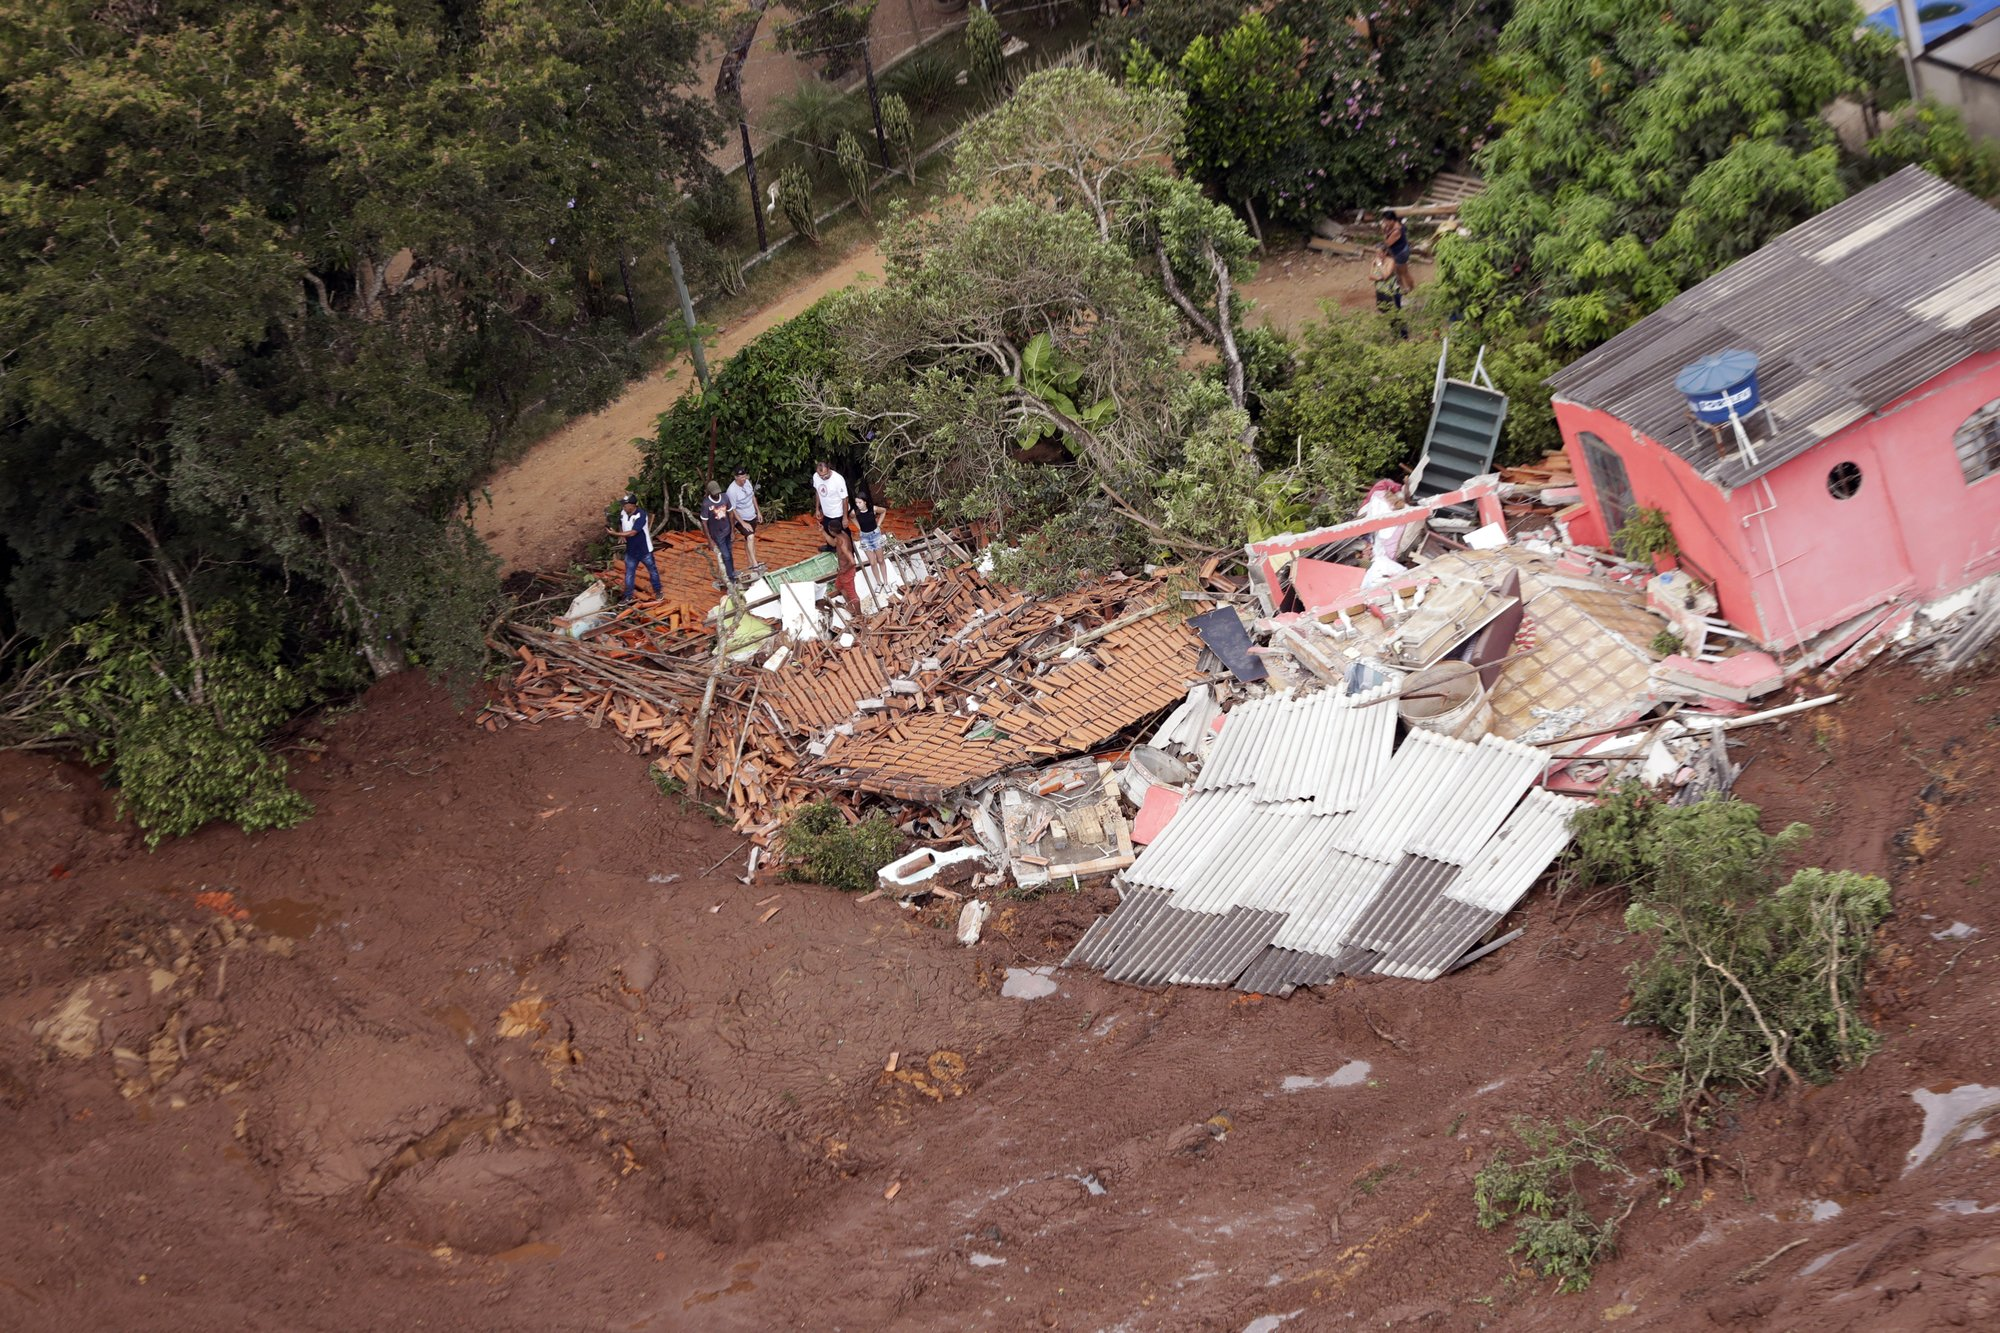 An aerial view shows a destroyed house after a dam collapsed in Brumadinho, Brazil, on Saturday, Jan. 26, 2019. Photo: AP